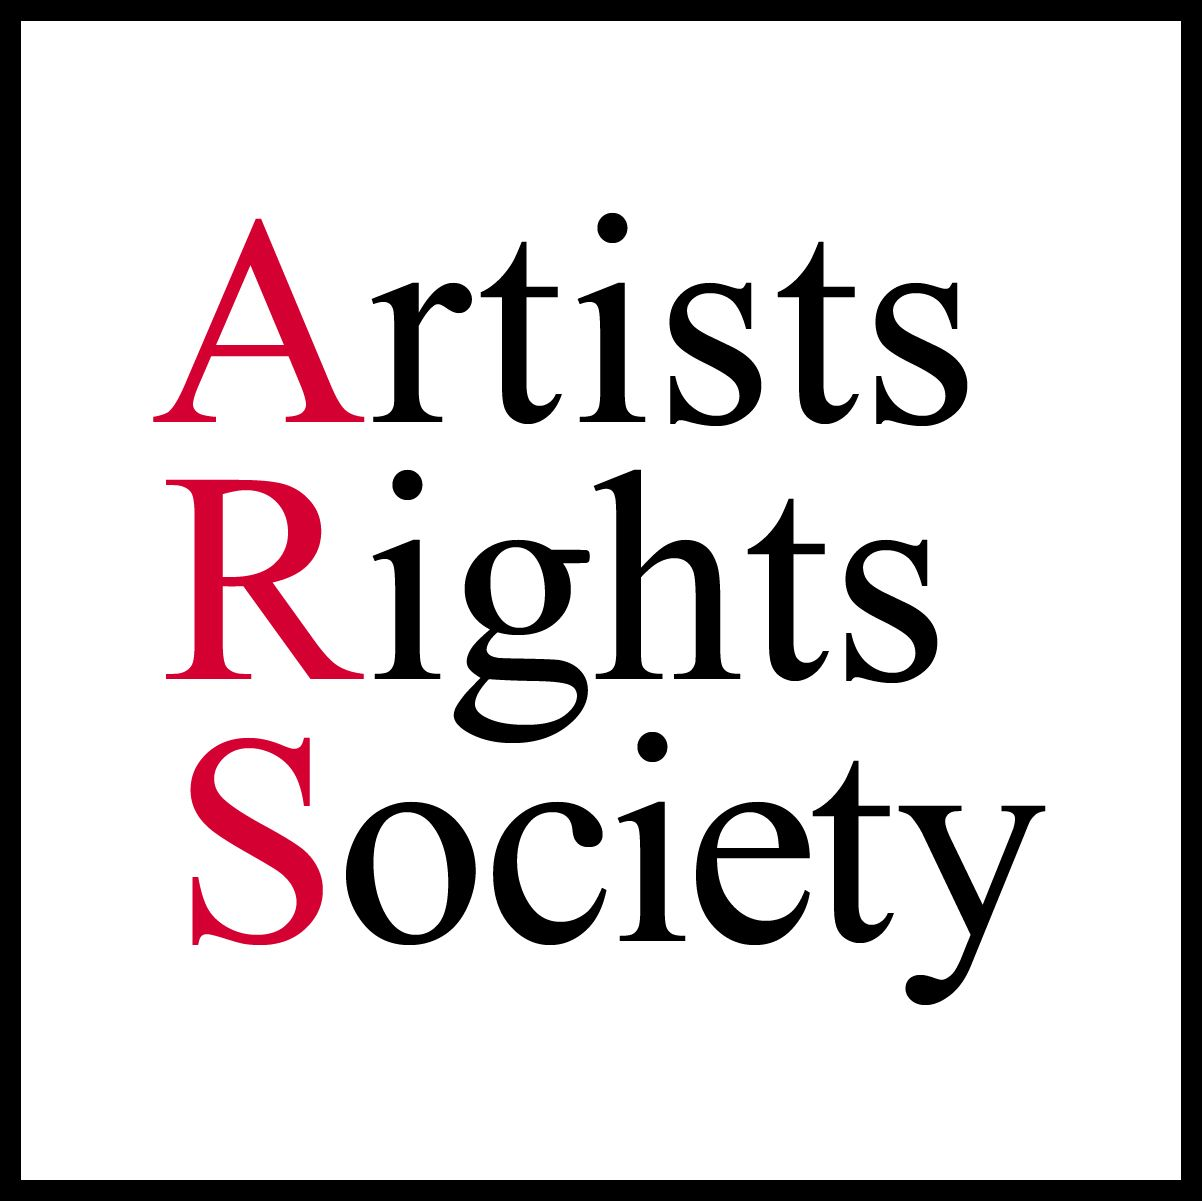 Artists rights 101 artists rights society society